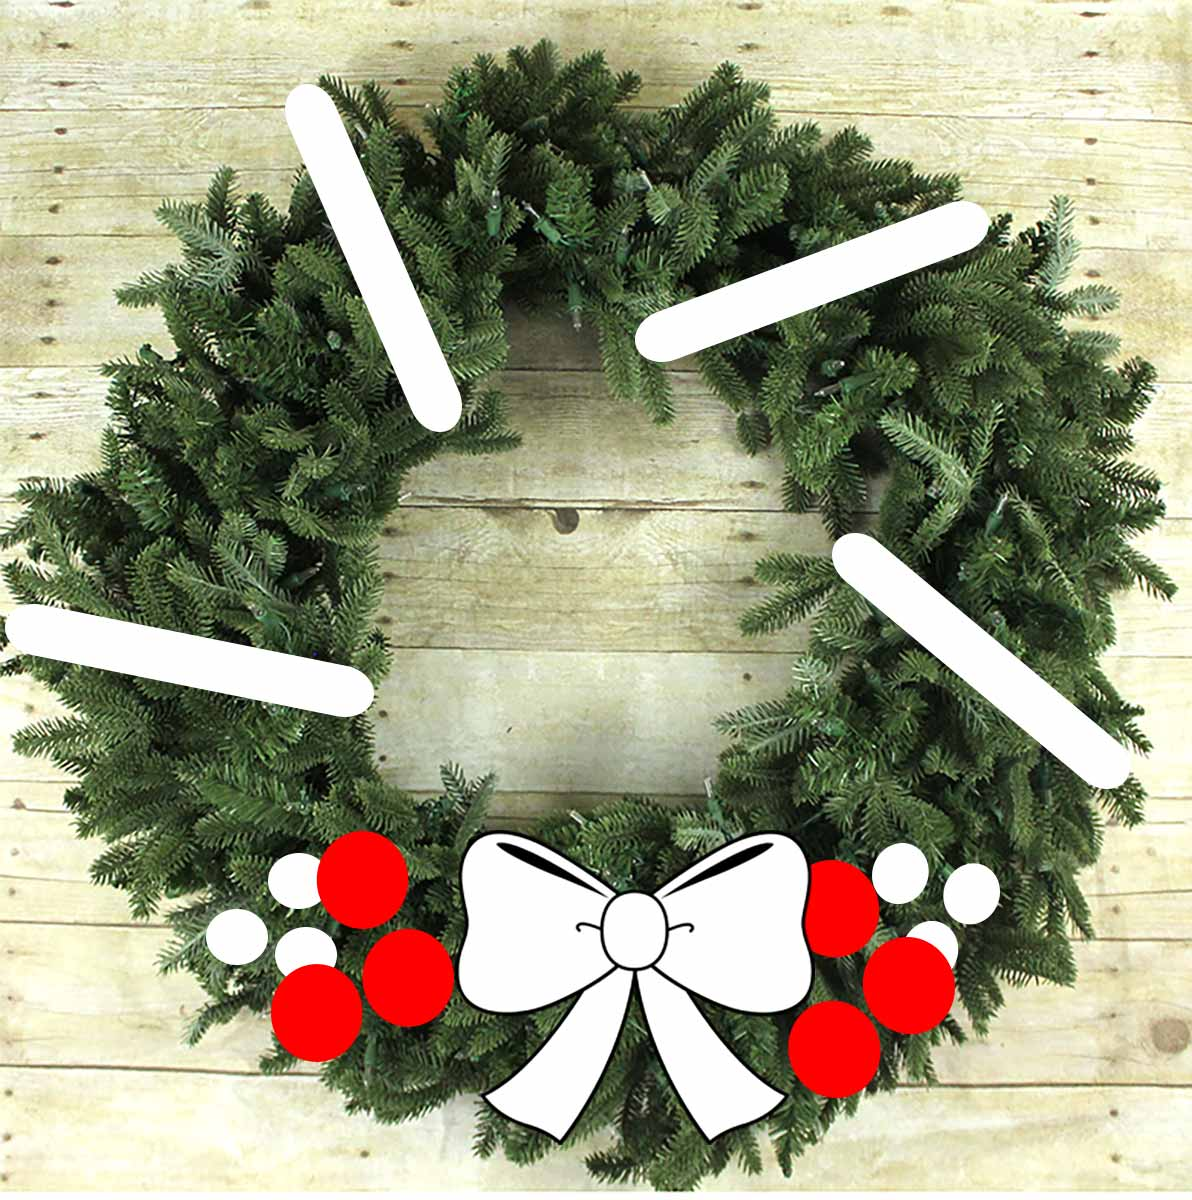 Wreath styling off center